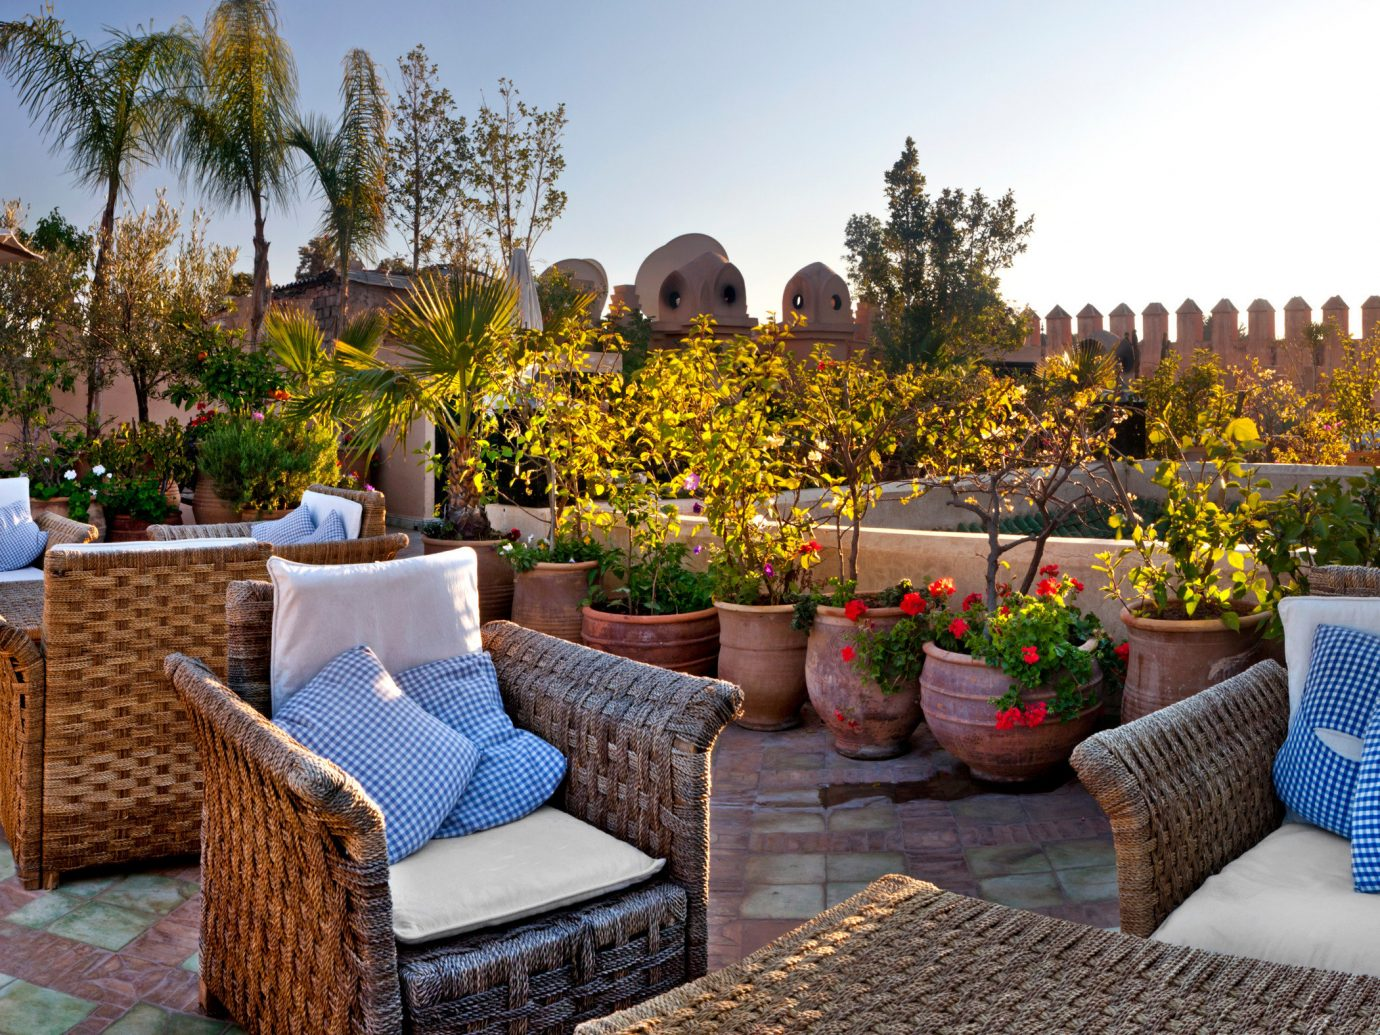 Outdoor space at Dar Les Cigognes, Marrakech, Morocco